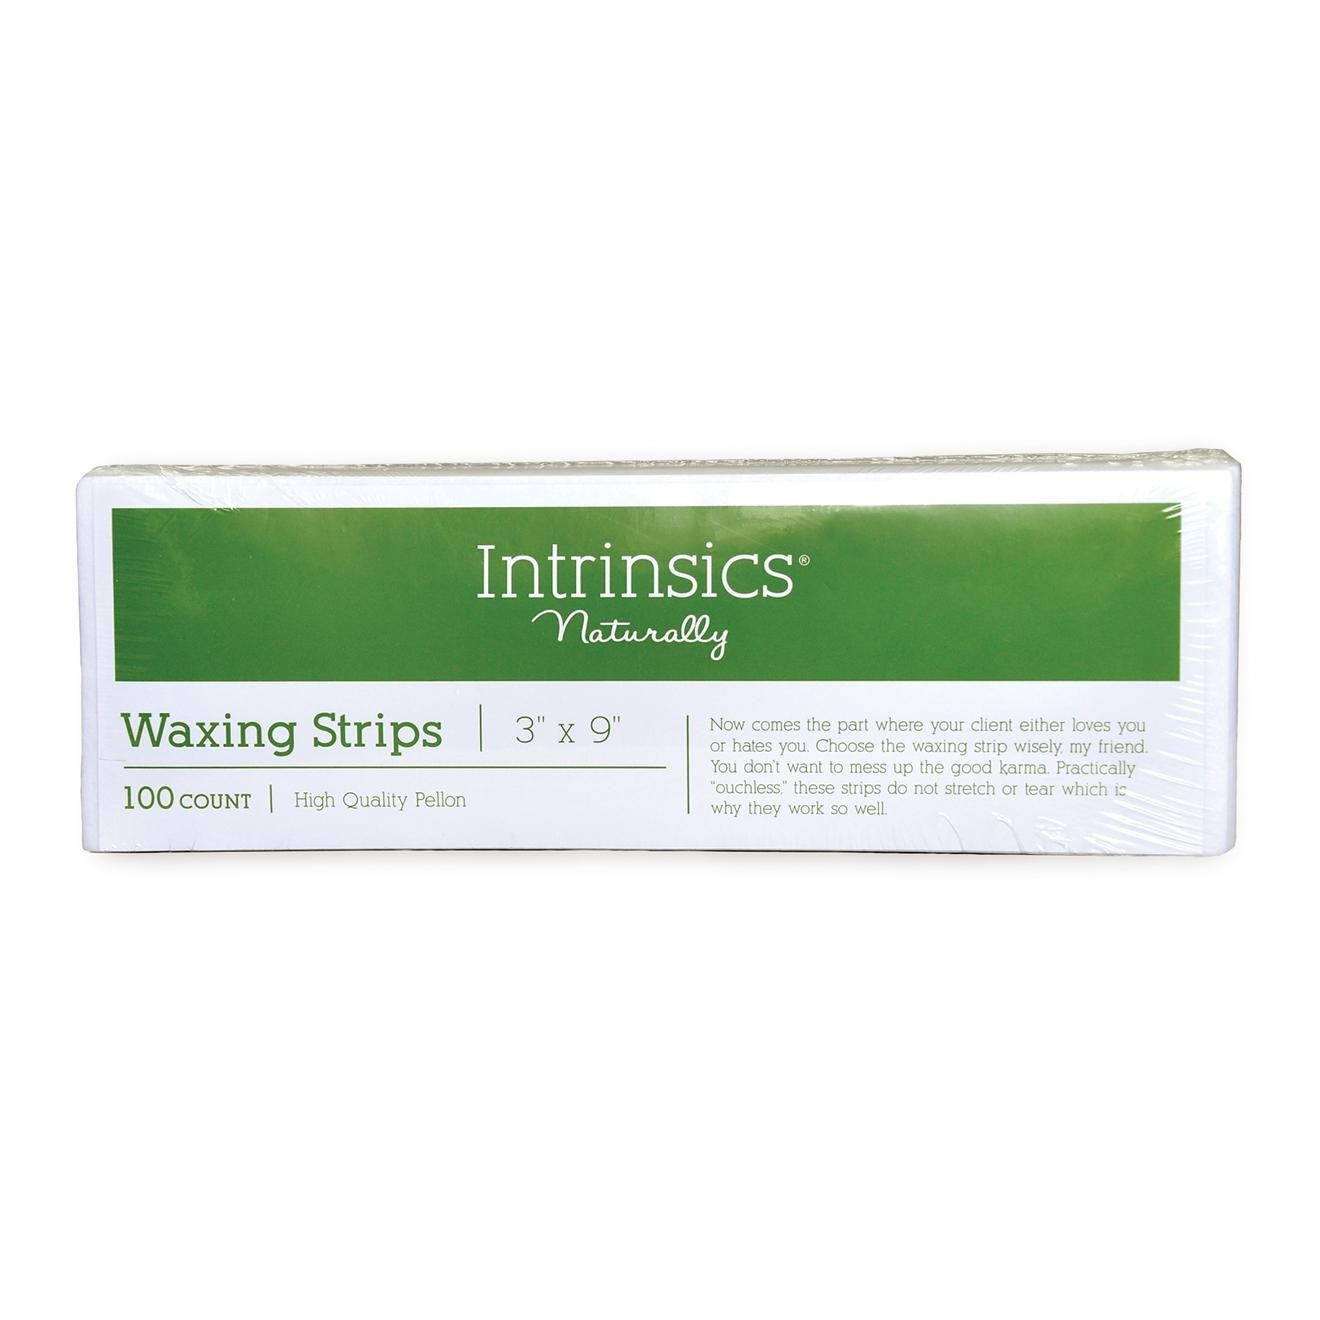 Intrinsics Waxing Strips